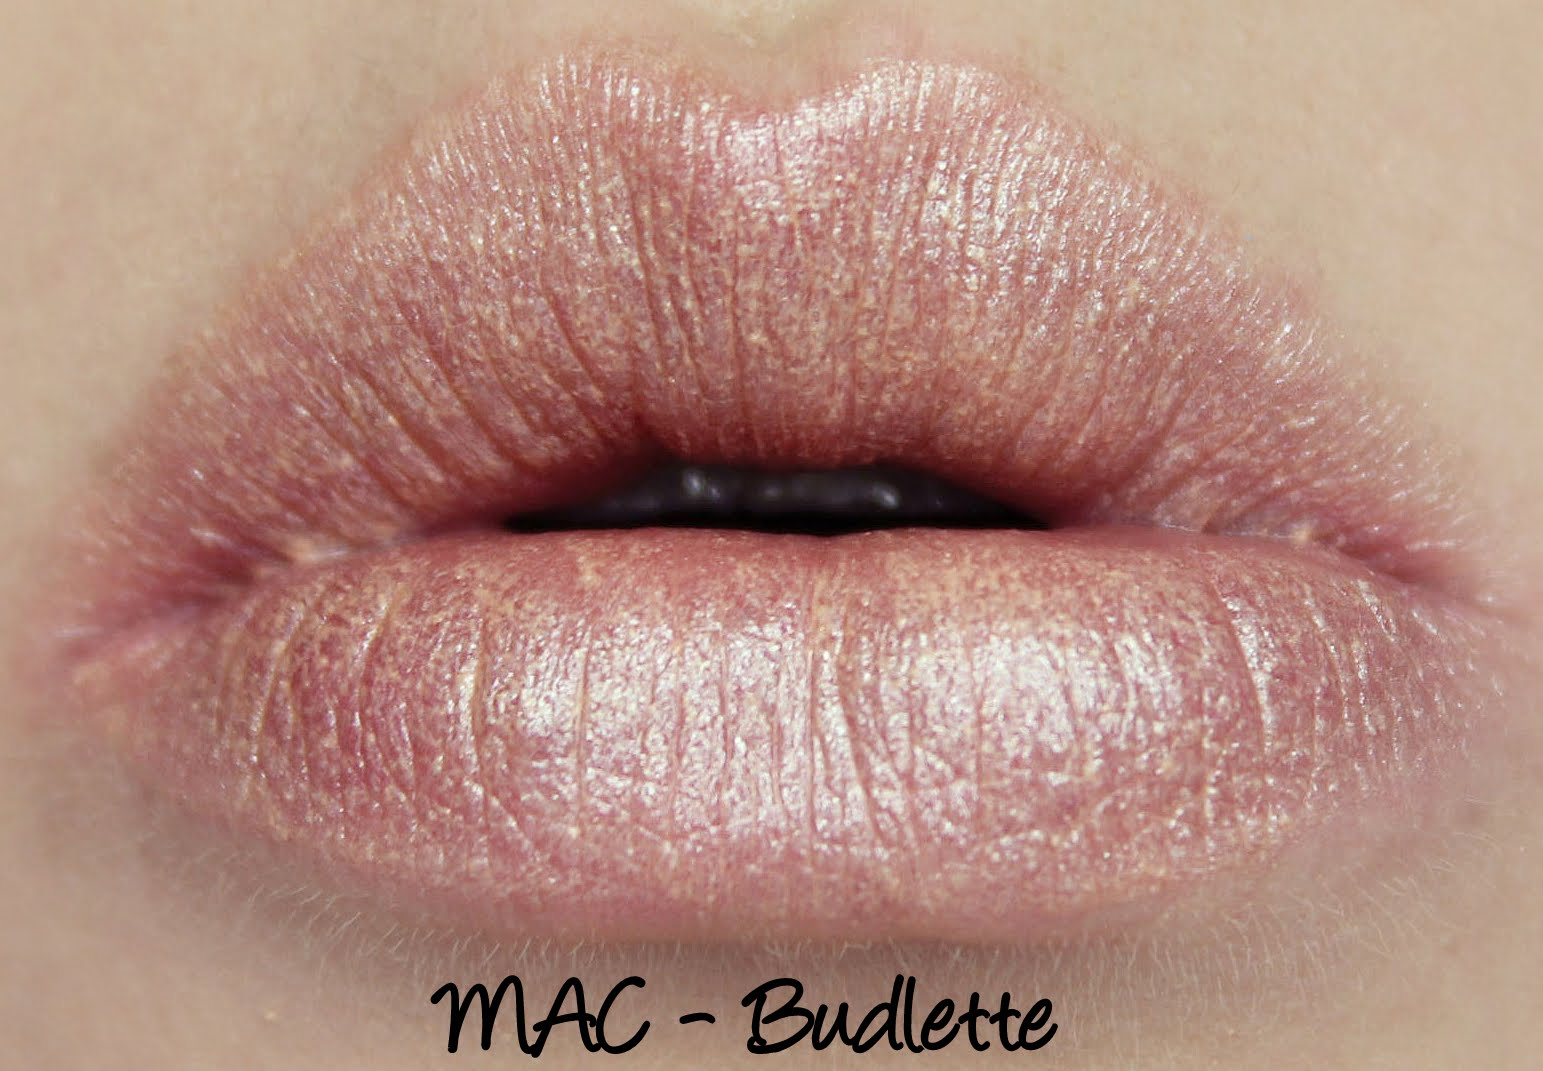 MAC Monday: Fab Florals - Budlette Lipstick Swatches and Review